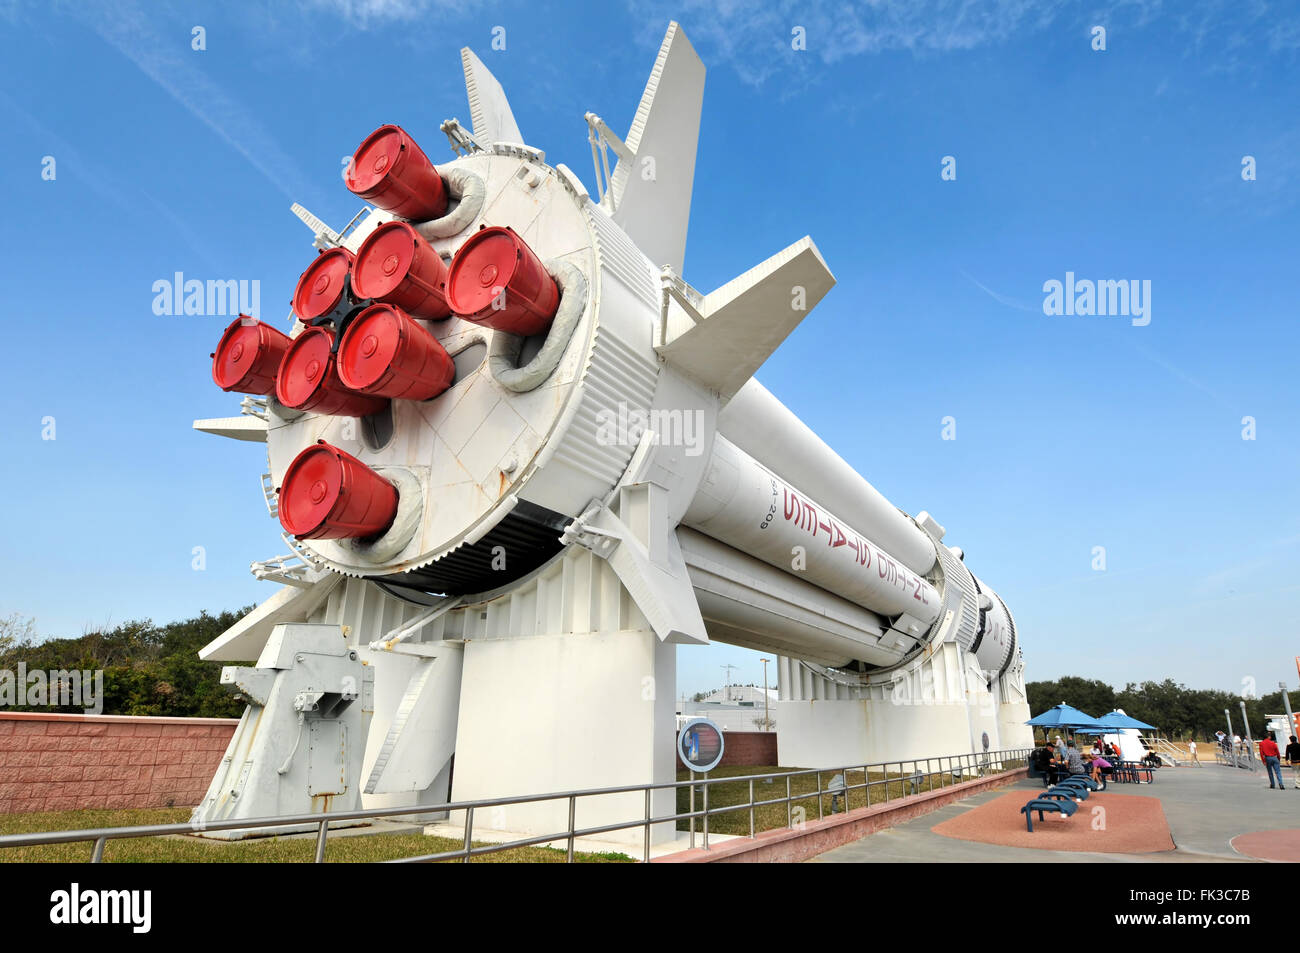 CAPE CANAVERAL, FL - JAN 2: Display of rockets at the Rocket Garden at Kennedy Space Center featuring 8 authentic - Stock Image